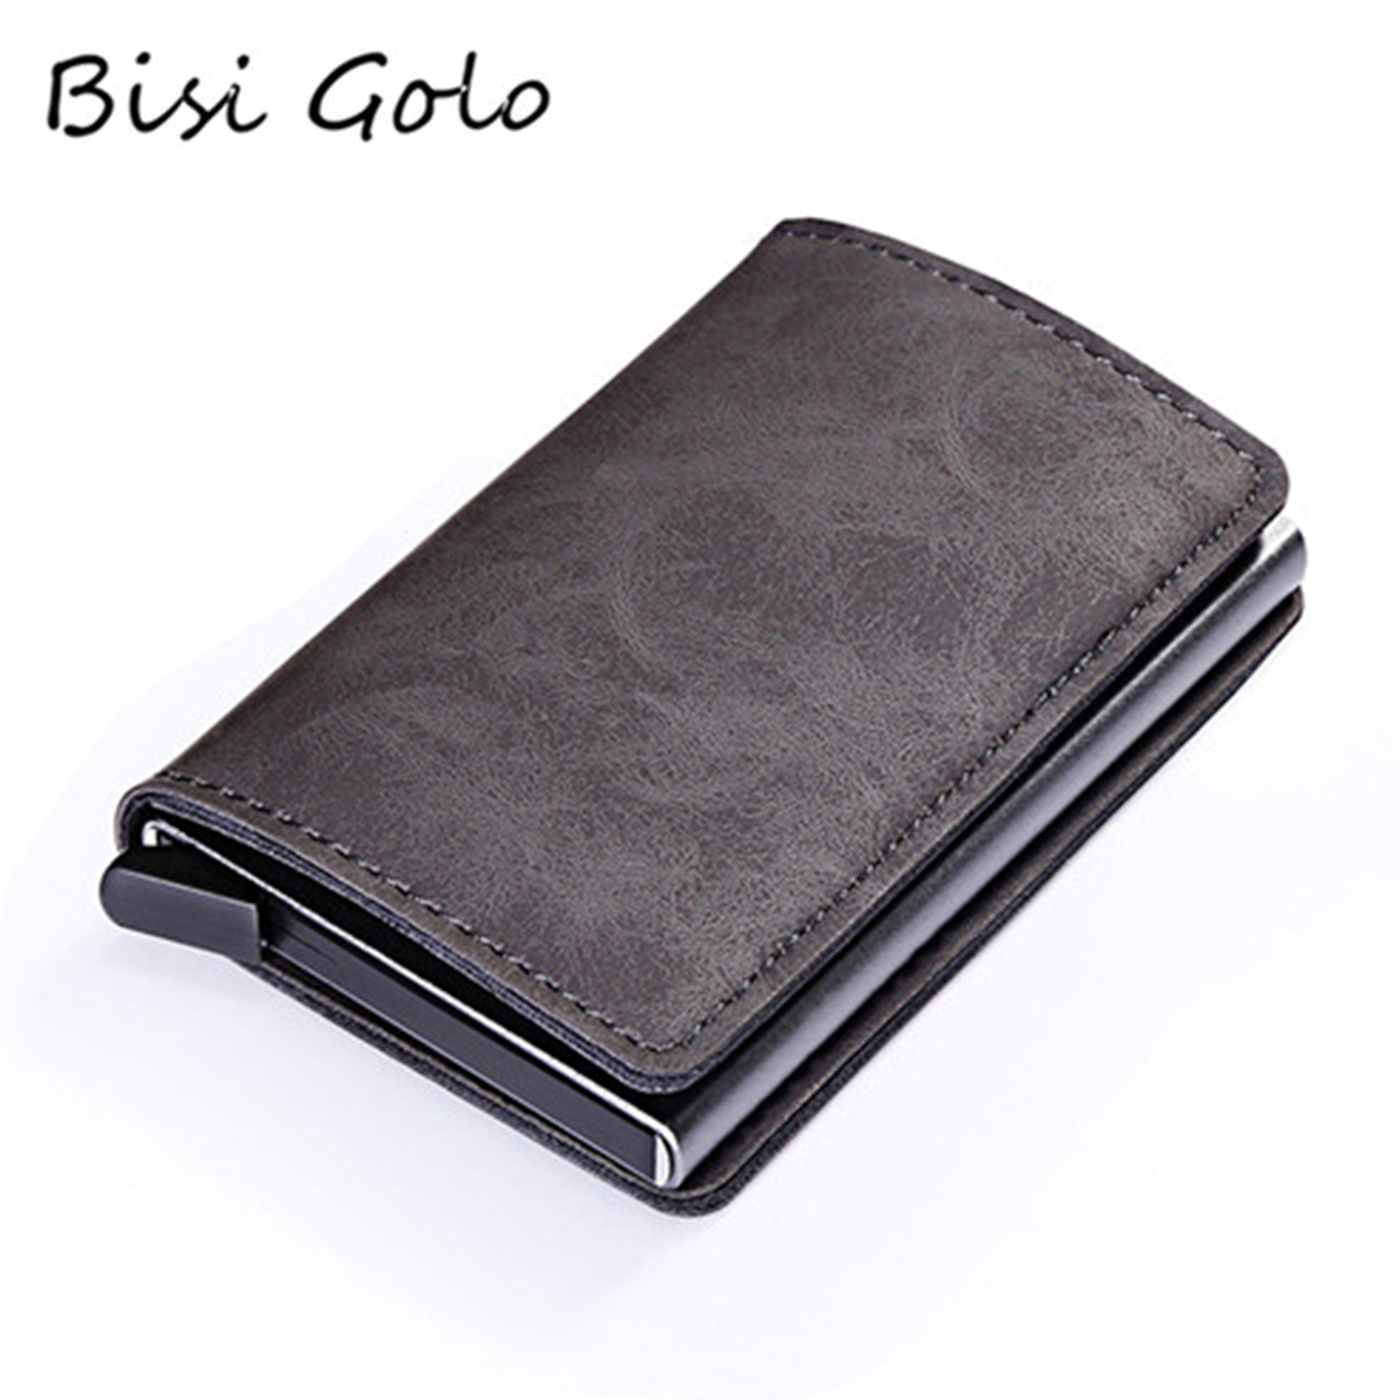 BISI GORO New PU Leather Metal Single Box Credit Card Holder Card Case Women And Men RFID Wallets Vintage Business ID Holder